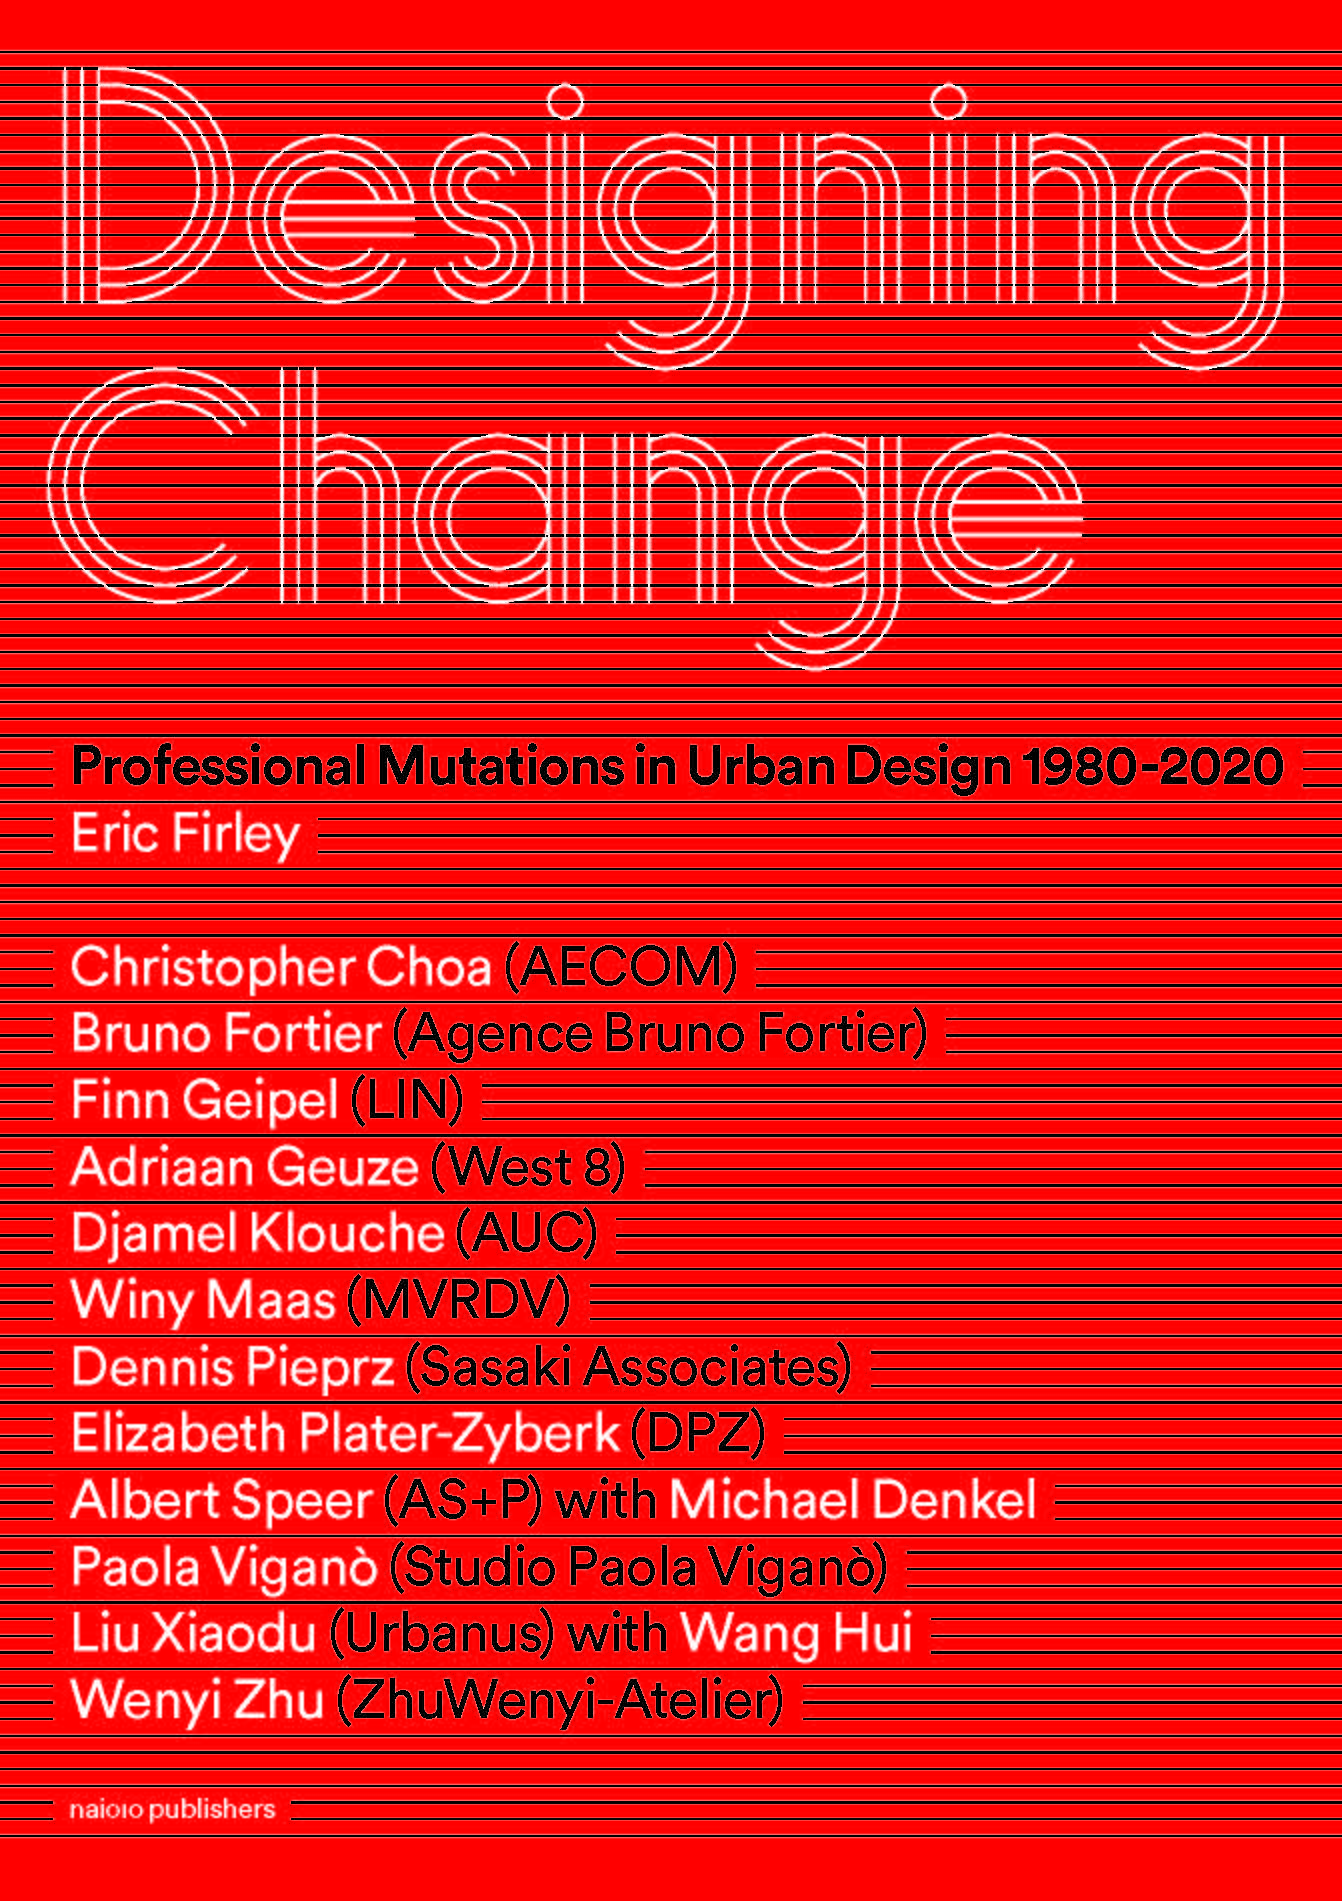 DesigningChange-cover